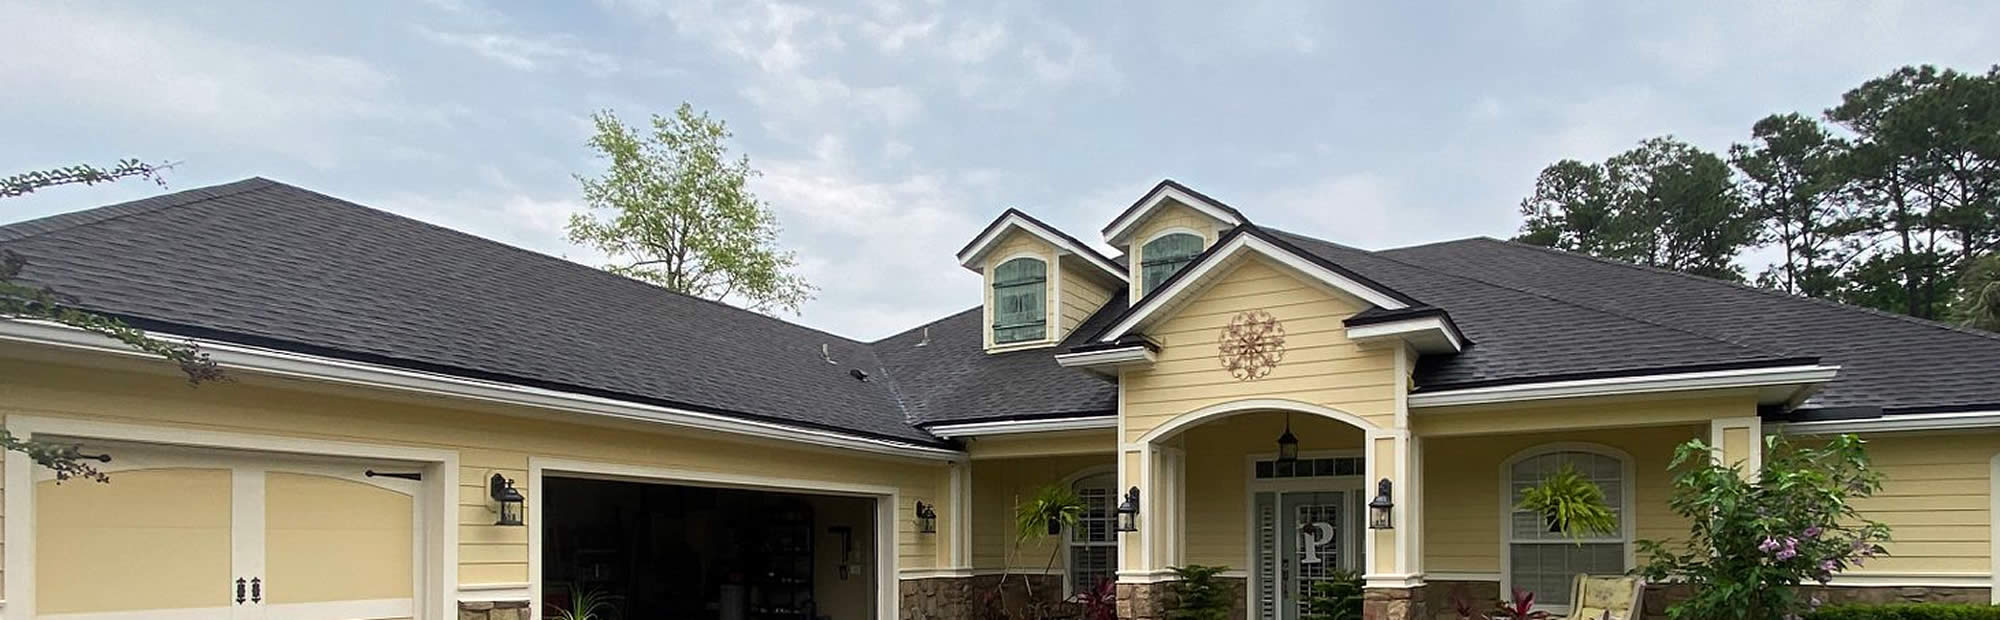 Residential New Roof Installation Florida Home Roofers Orlando Sarasota Tampa